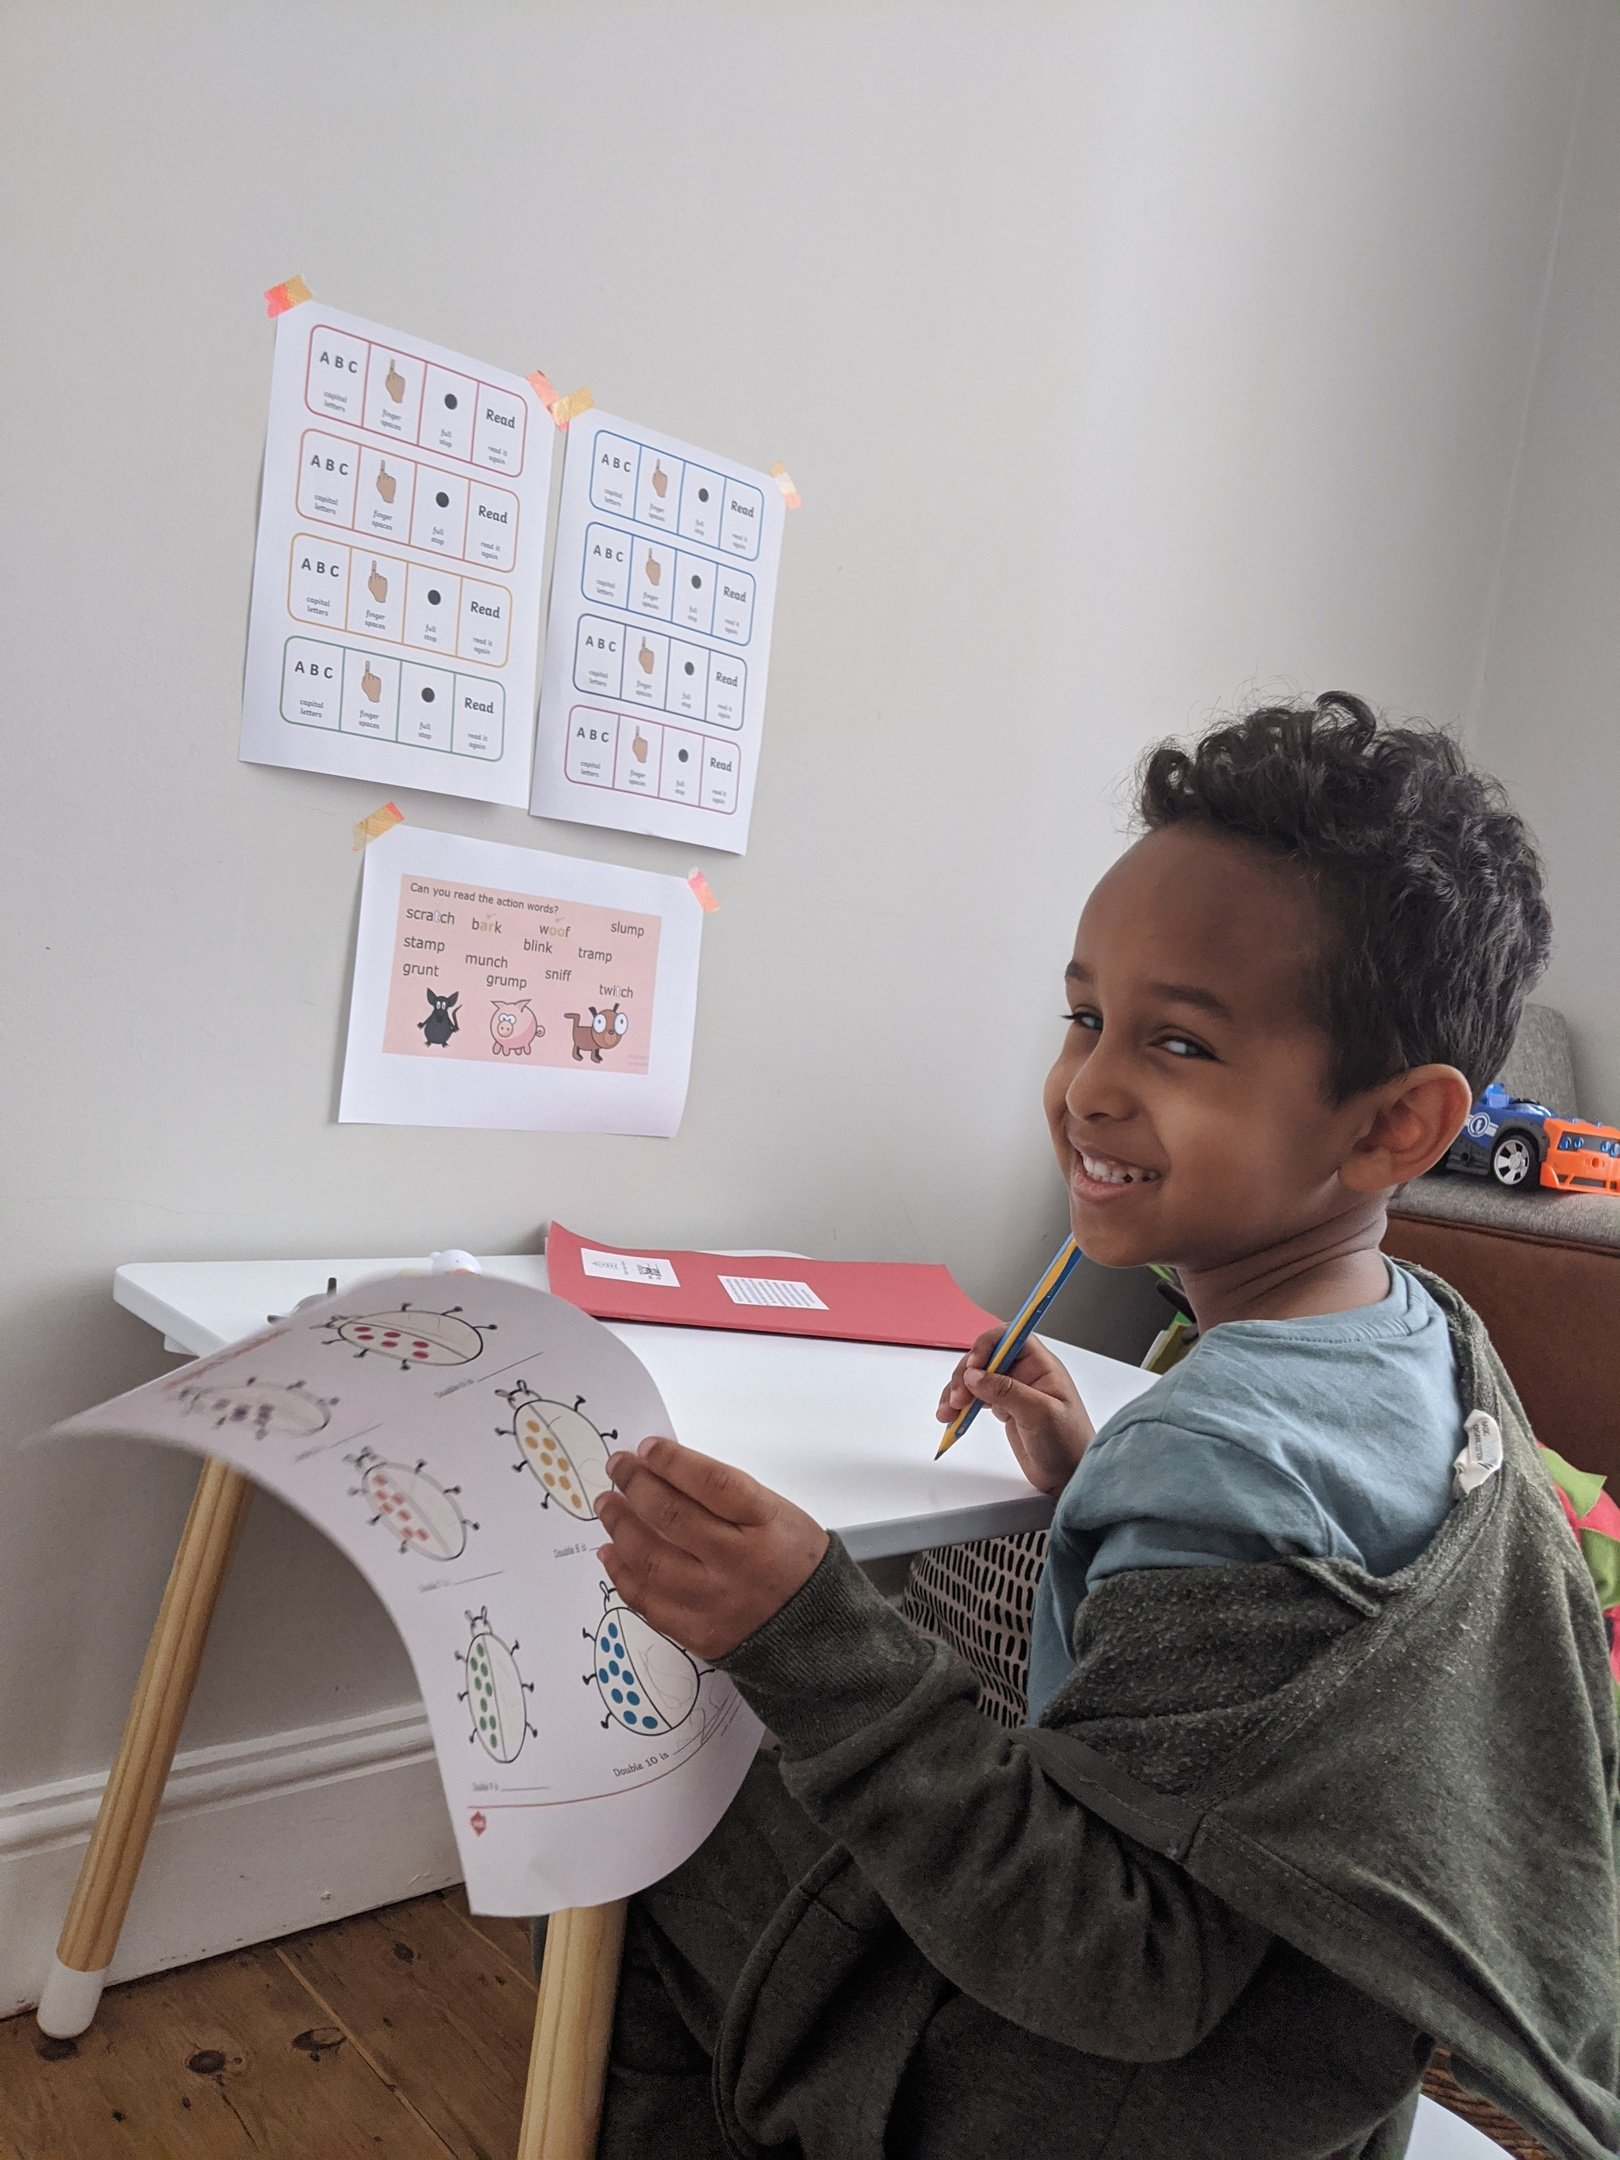 Yusuf, its super to see you doing your maths work!